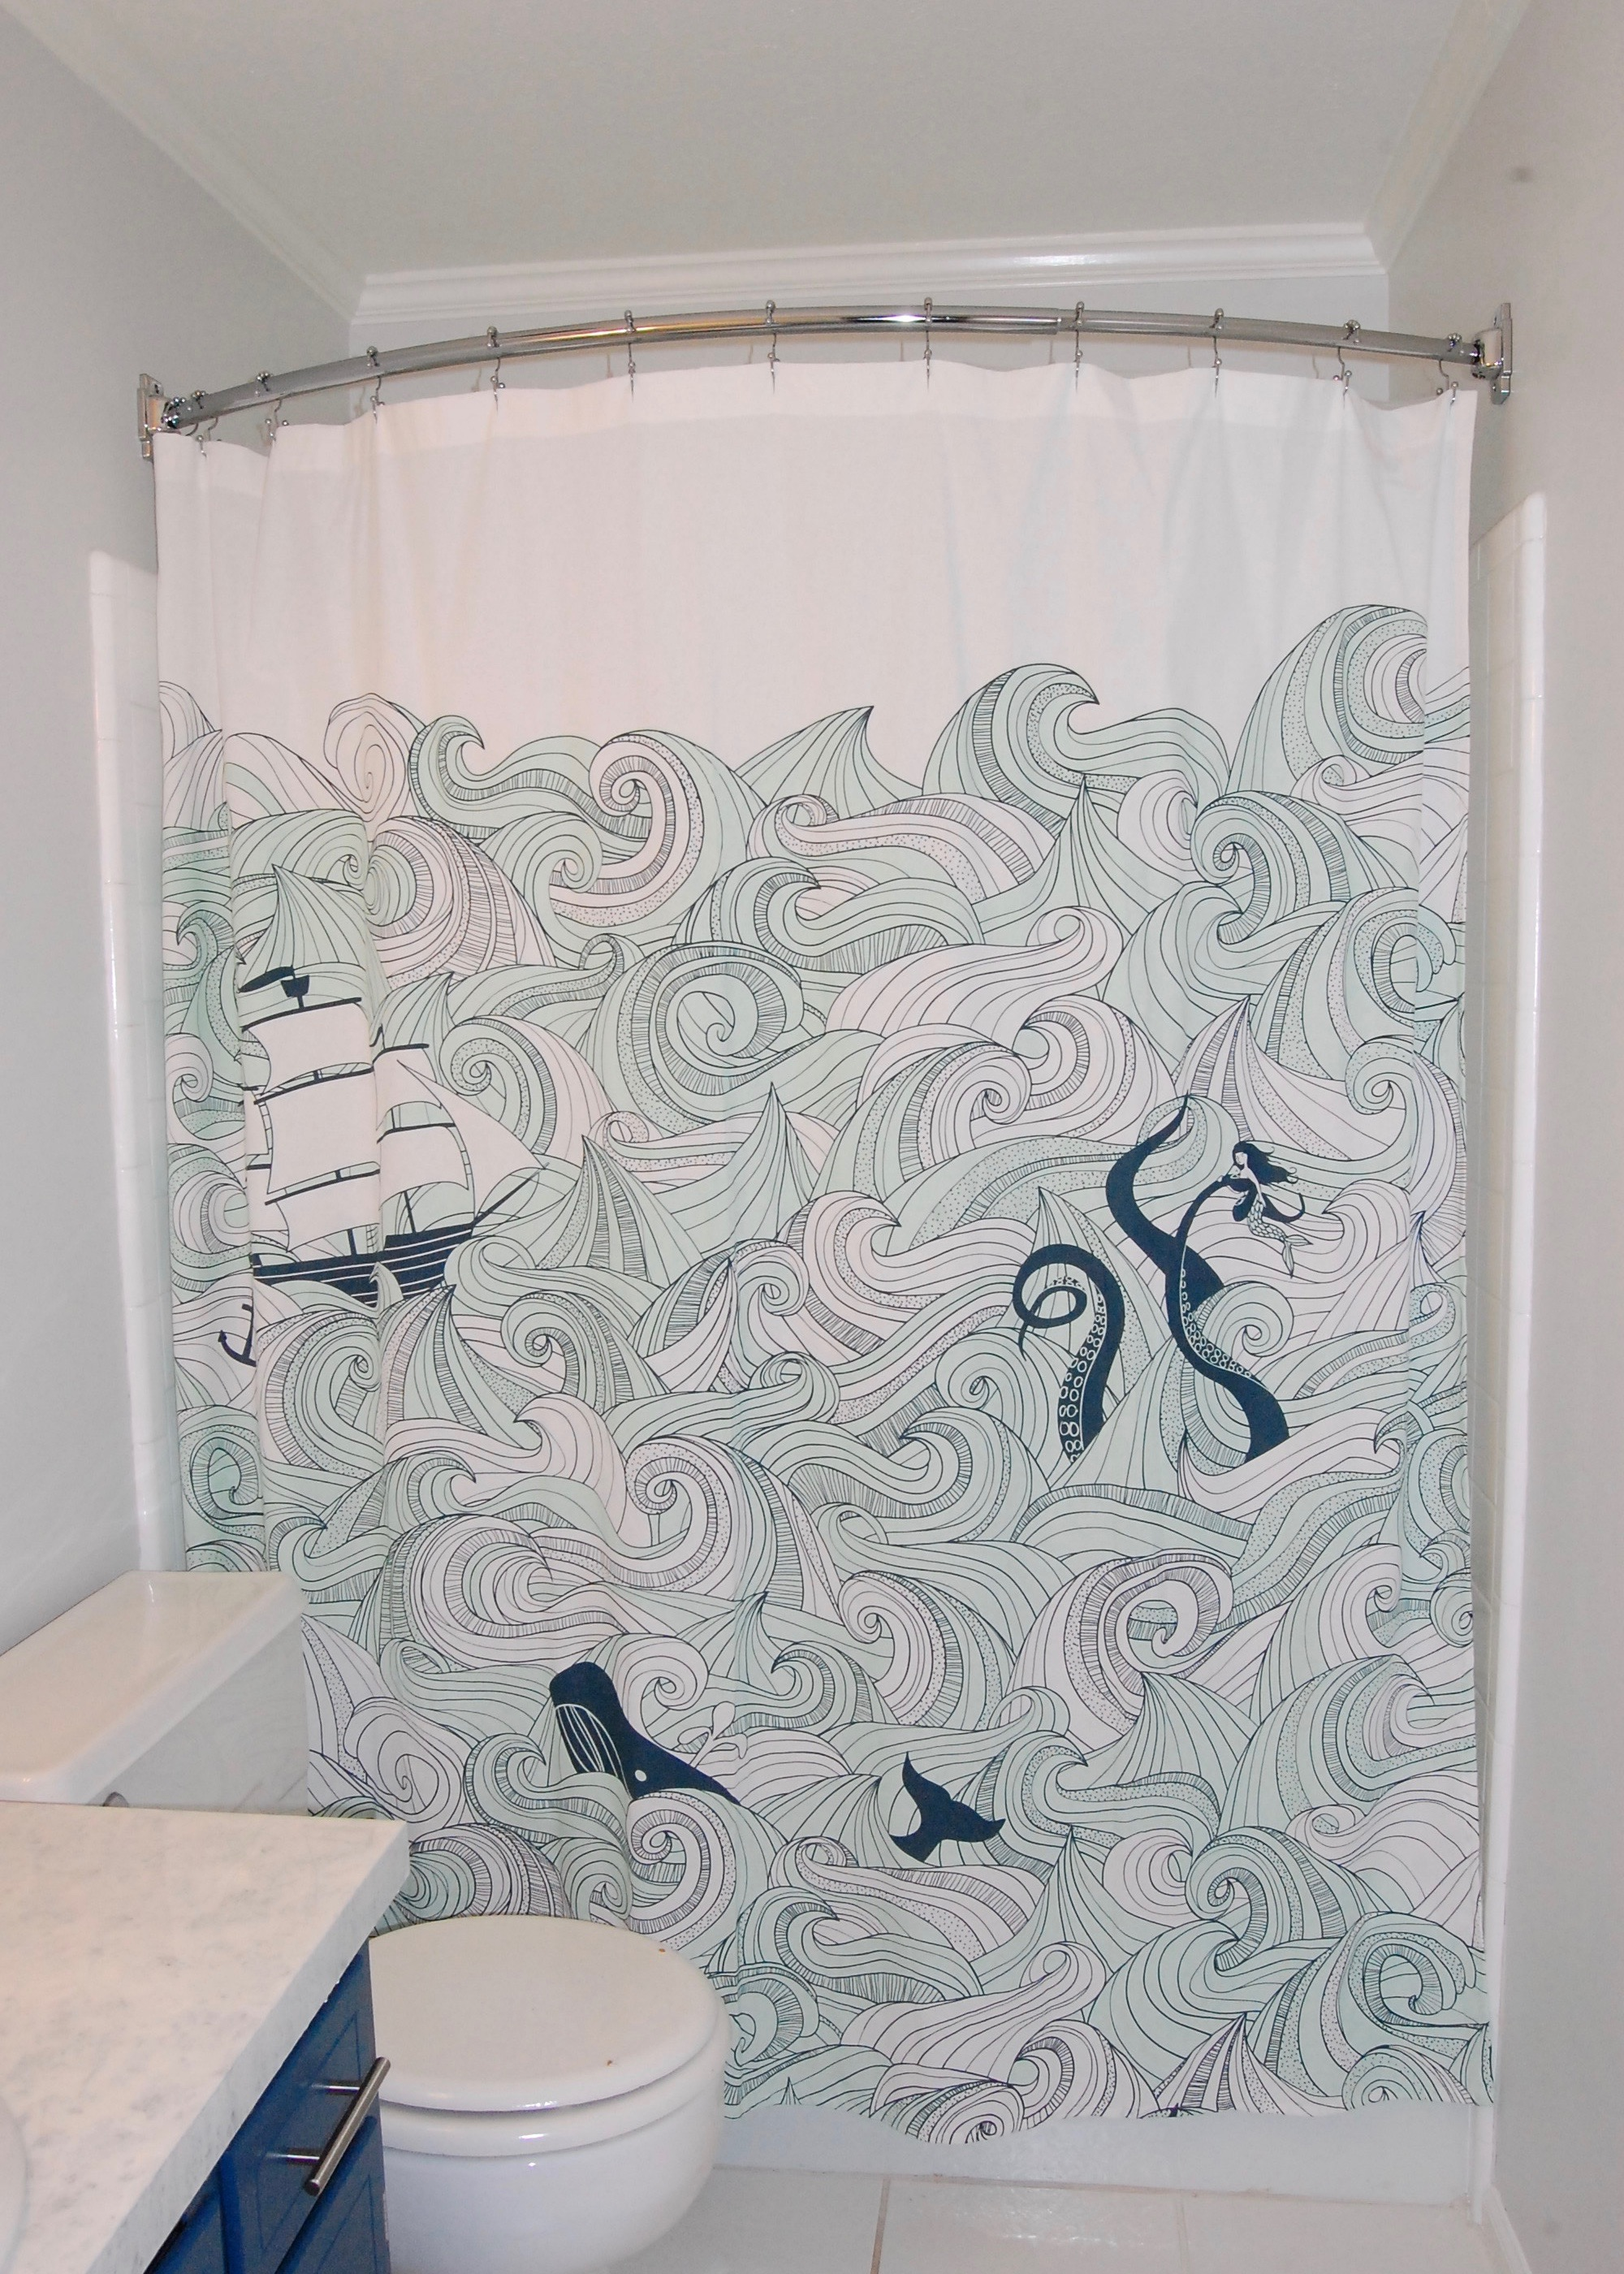 82 Shower Curtain At What Height Should A Shower Curtain Be Installed Gerwerken